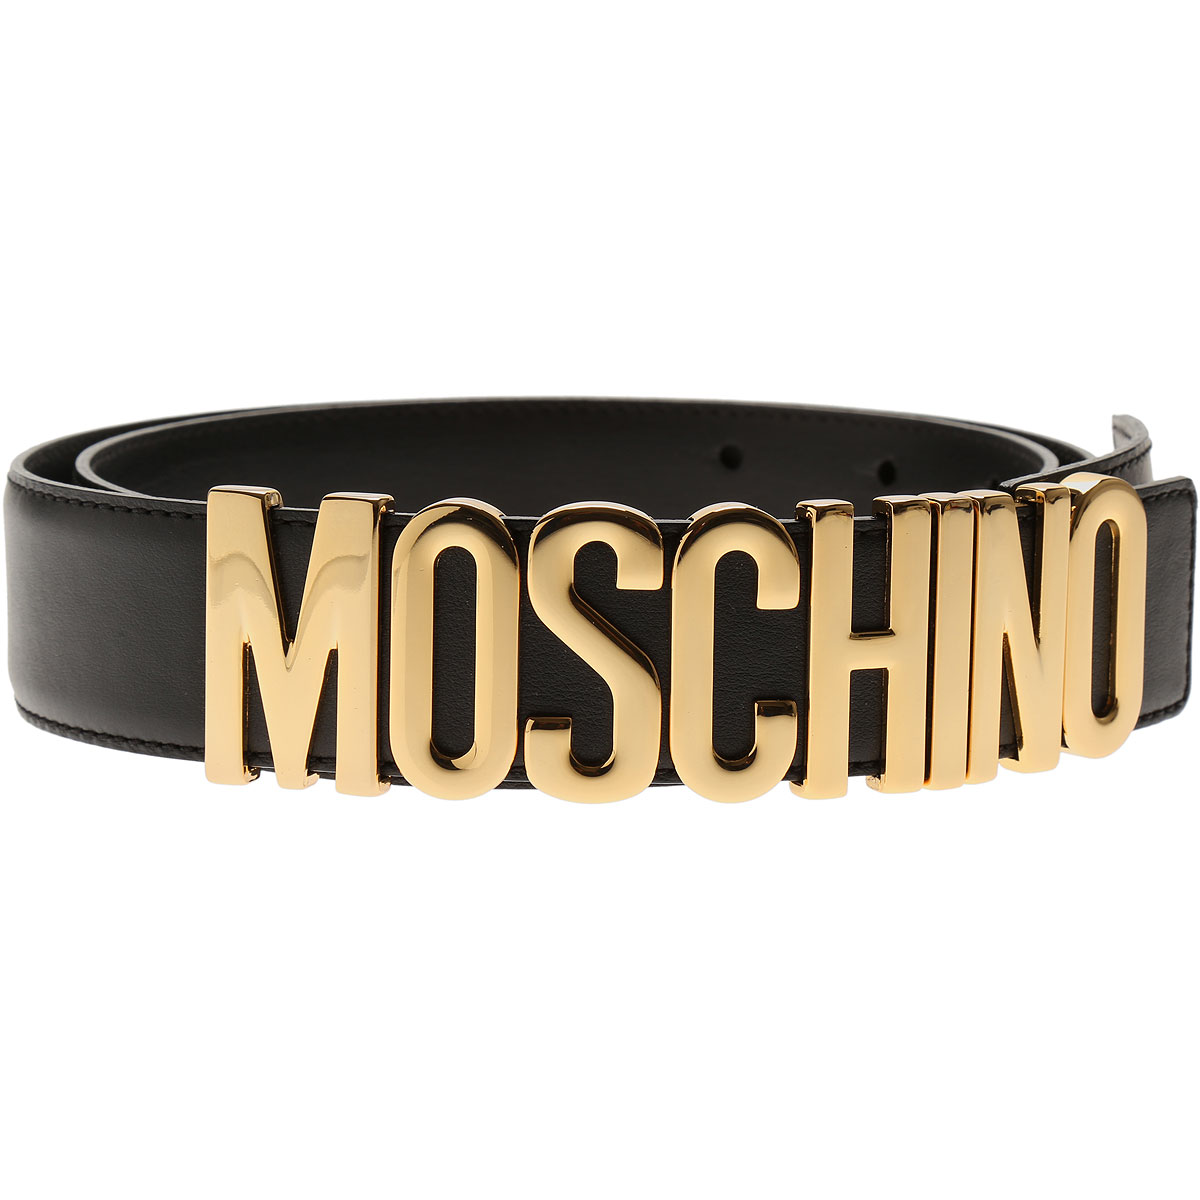 Moschino Womens Belts, Black, Leather, 2017, 38 inches - 95 cm 40 inches - 100 cm 42 inches - 105 cm 44 inches - 110 cm Eu - 38 Eu - 40 EU - 42